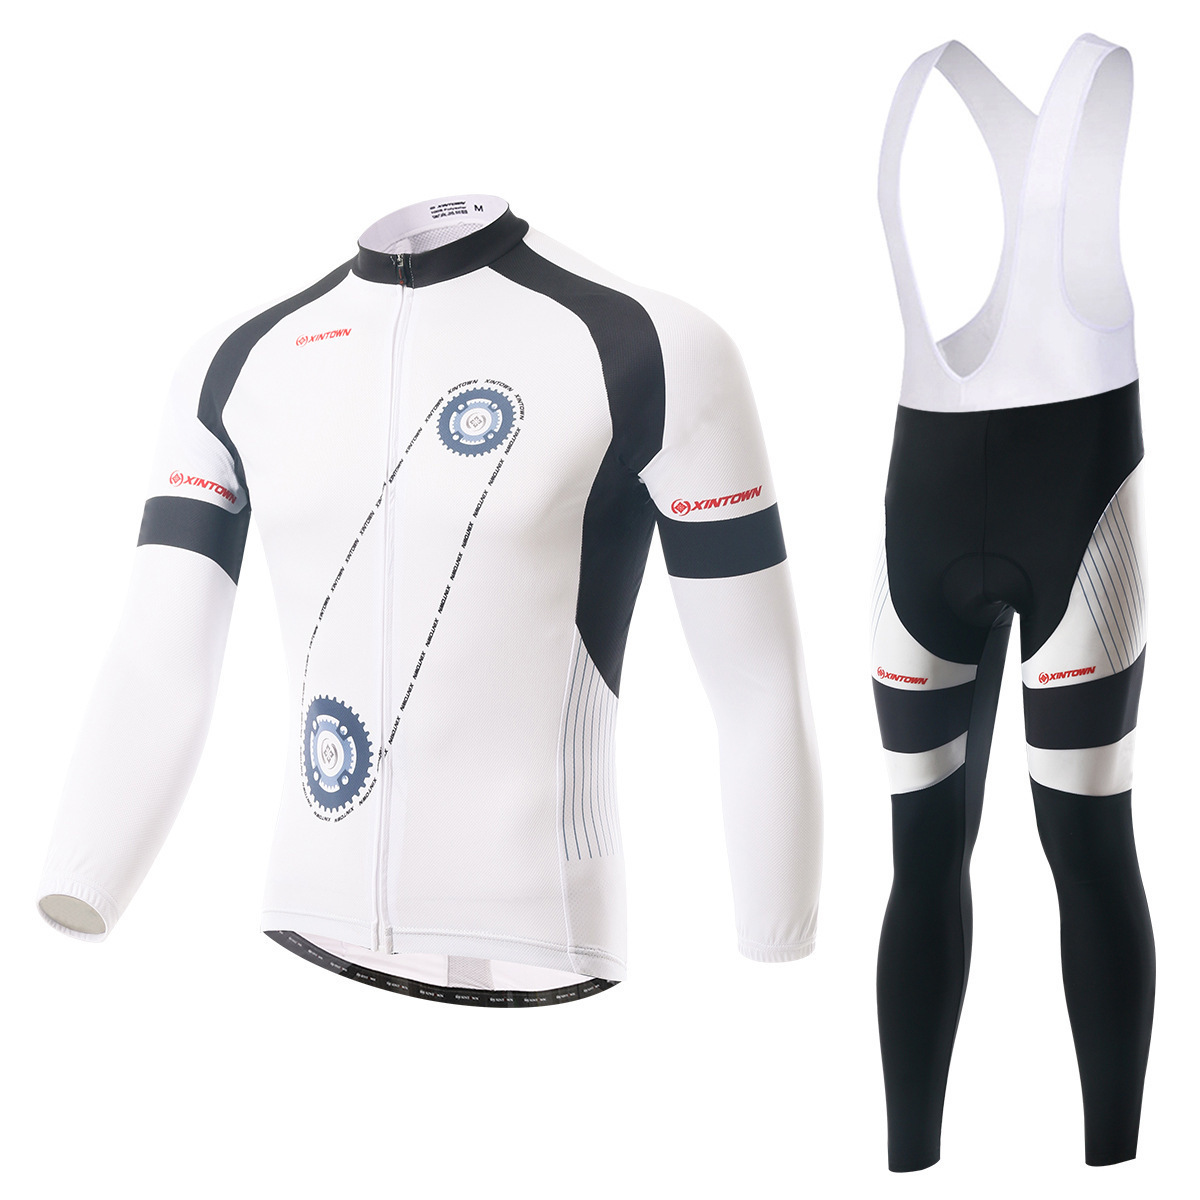 BOODUN Gear White Riding Clothes Straps Long Sleeve Suit Bicycle Serve Catch Down Windbreak Keep Warm Function Underwear